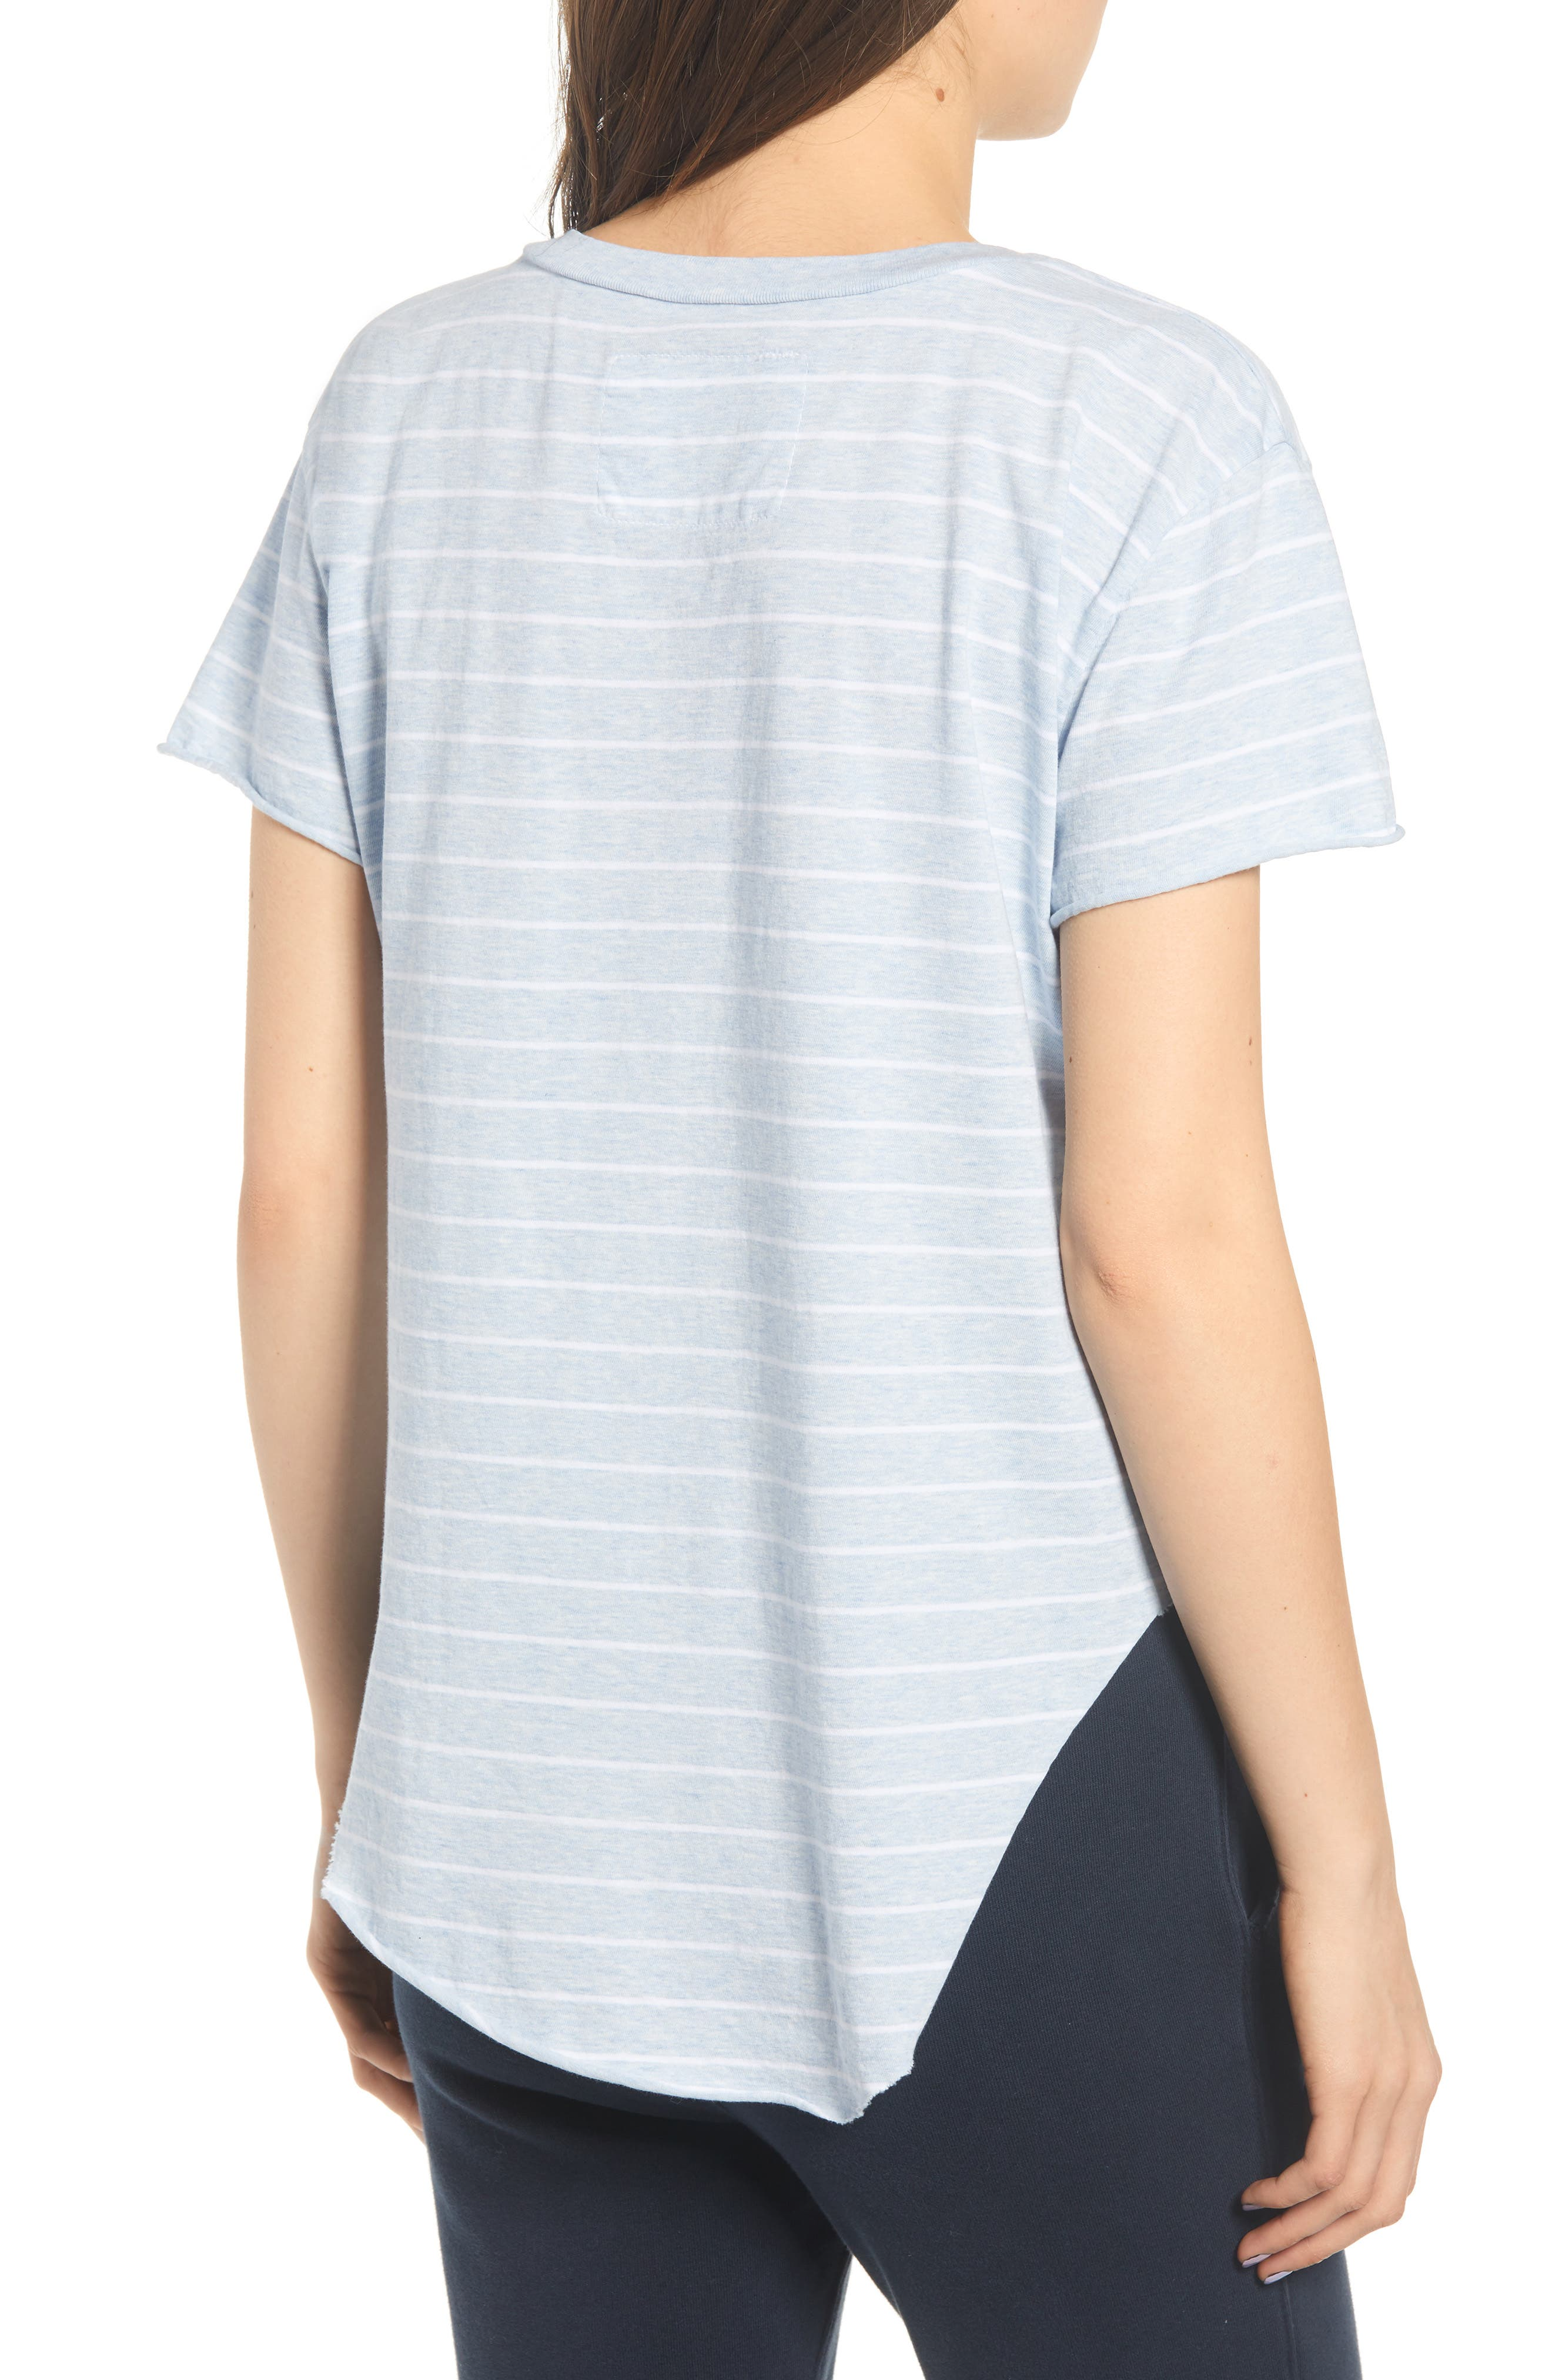 783b3e60 Women's Frank & Eileen Tee Lab Clothing | Nordstrom